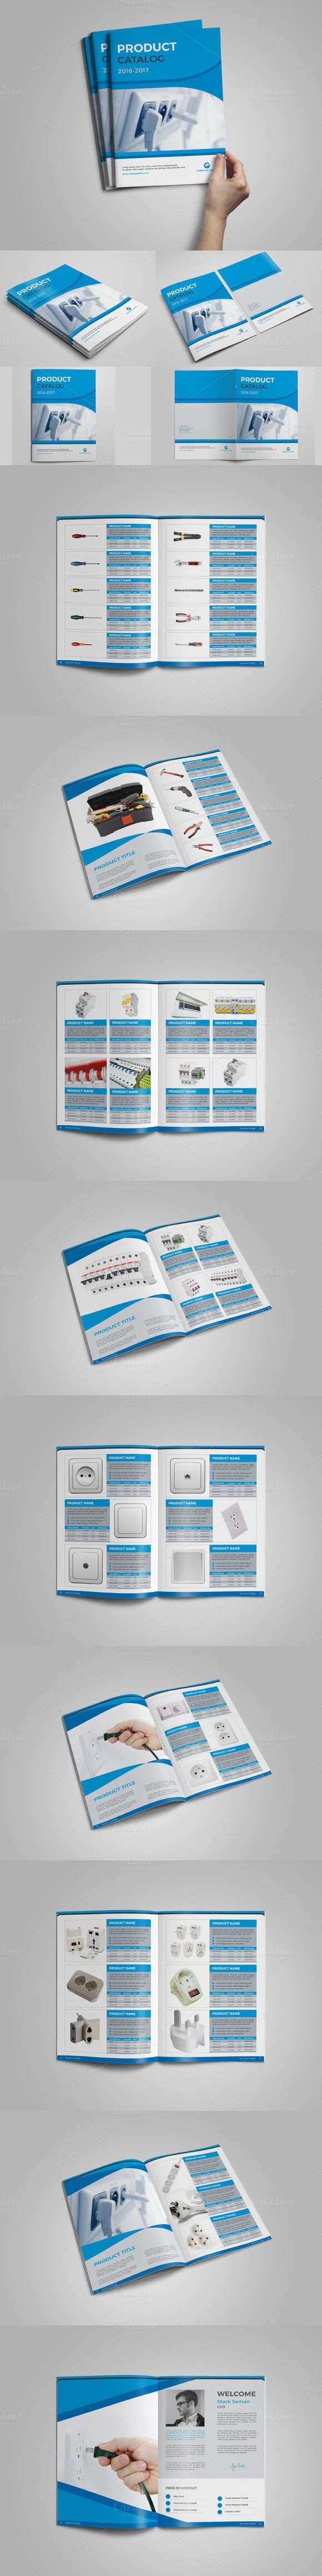 Product Catalog Brochure                                                                                                                                                     More